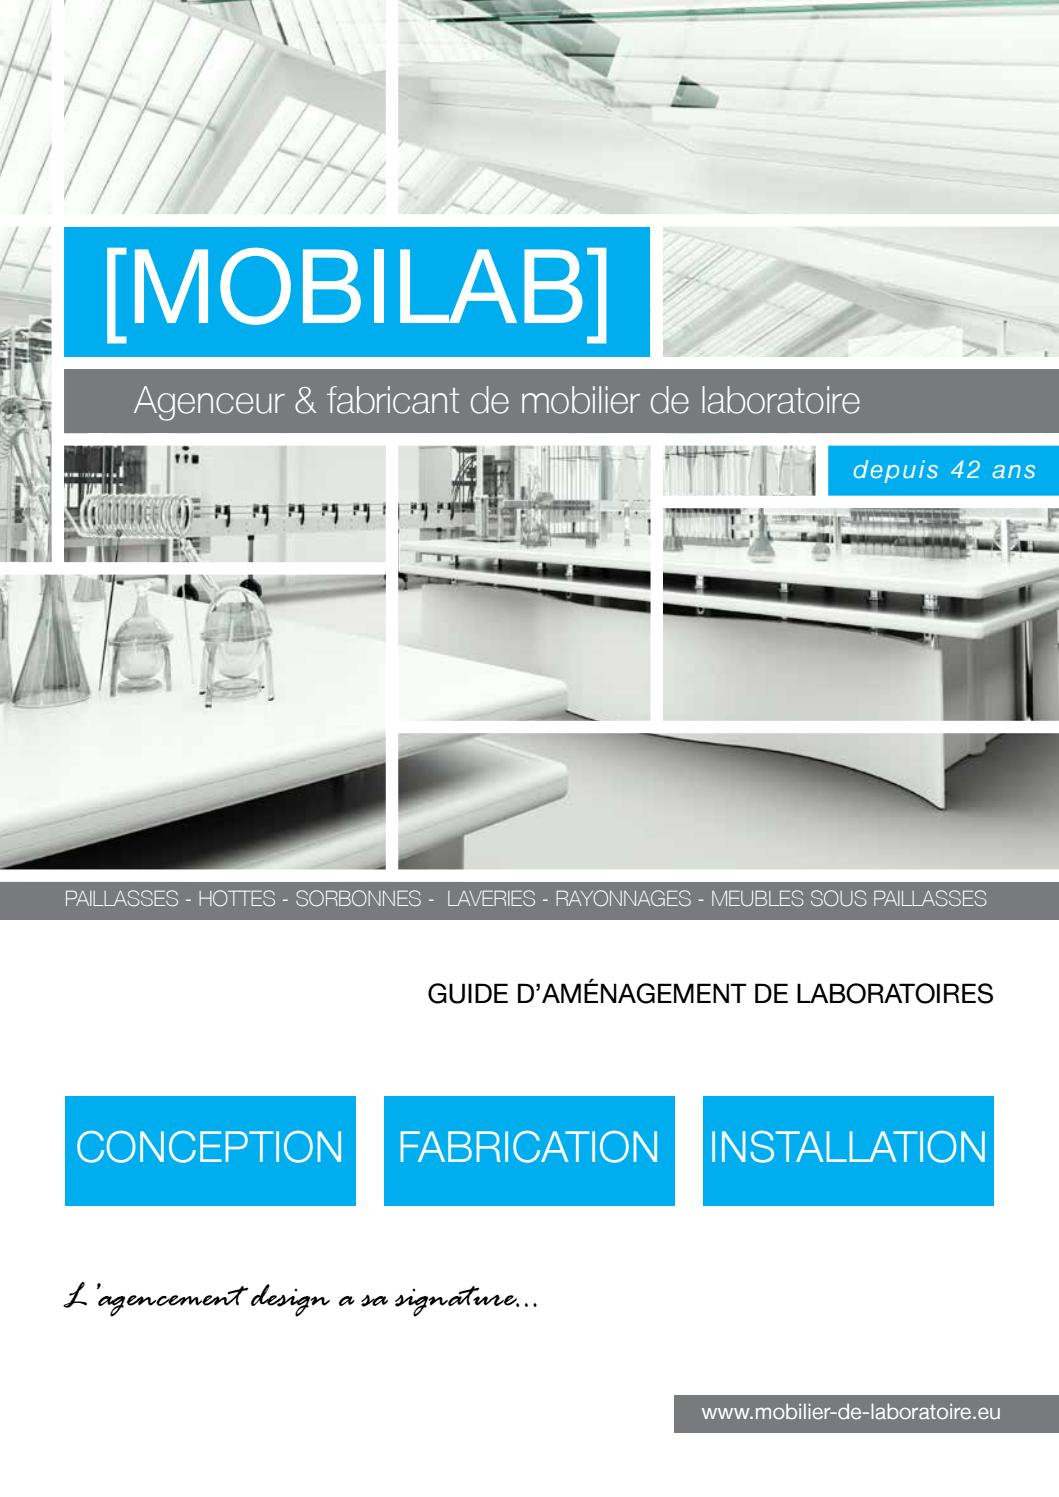 Meuble Palette Nocif Catalogue Mobilab 2017 Mobilier De Laboratoire By Biolab